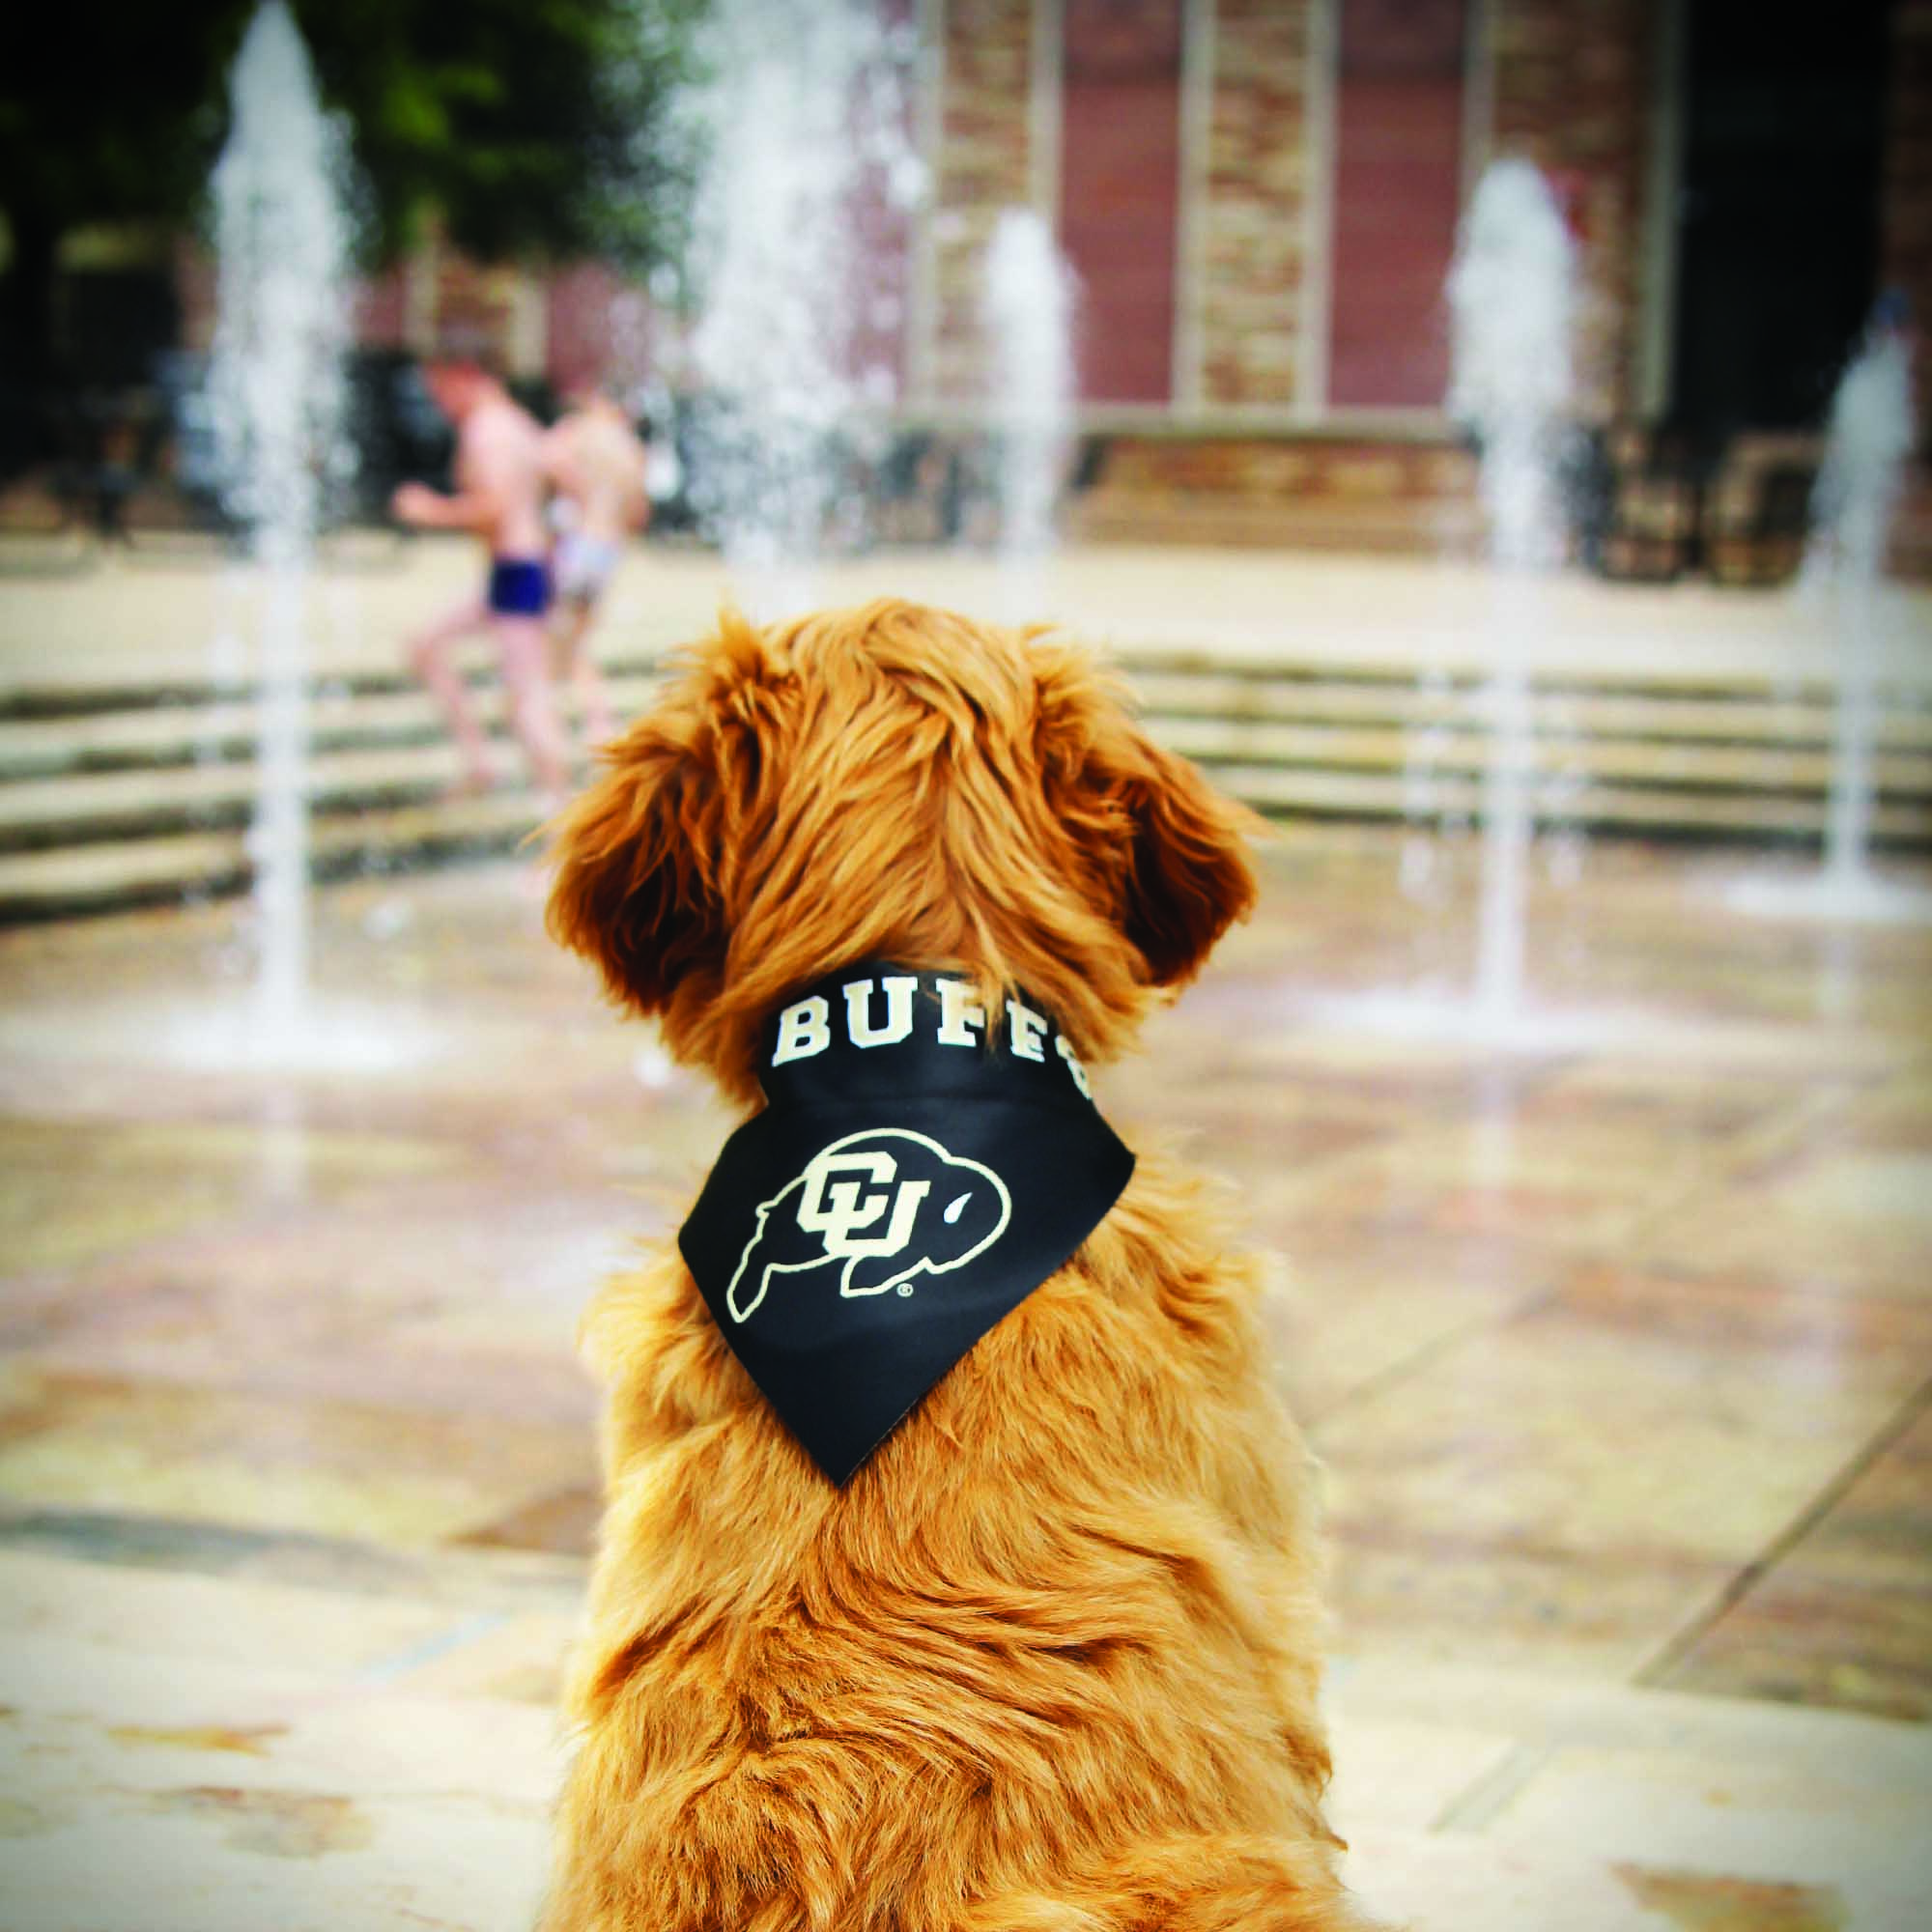 Puppy with Buffs  bandana at the UMC fountains